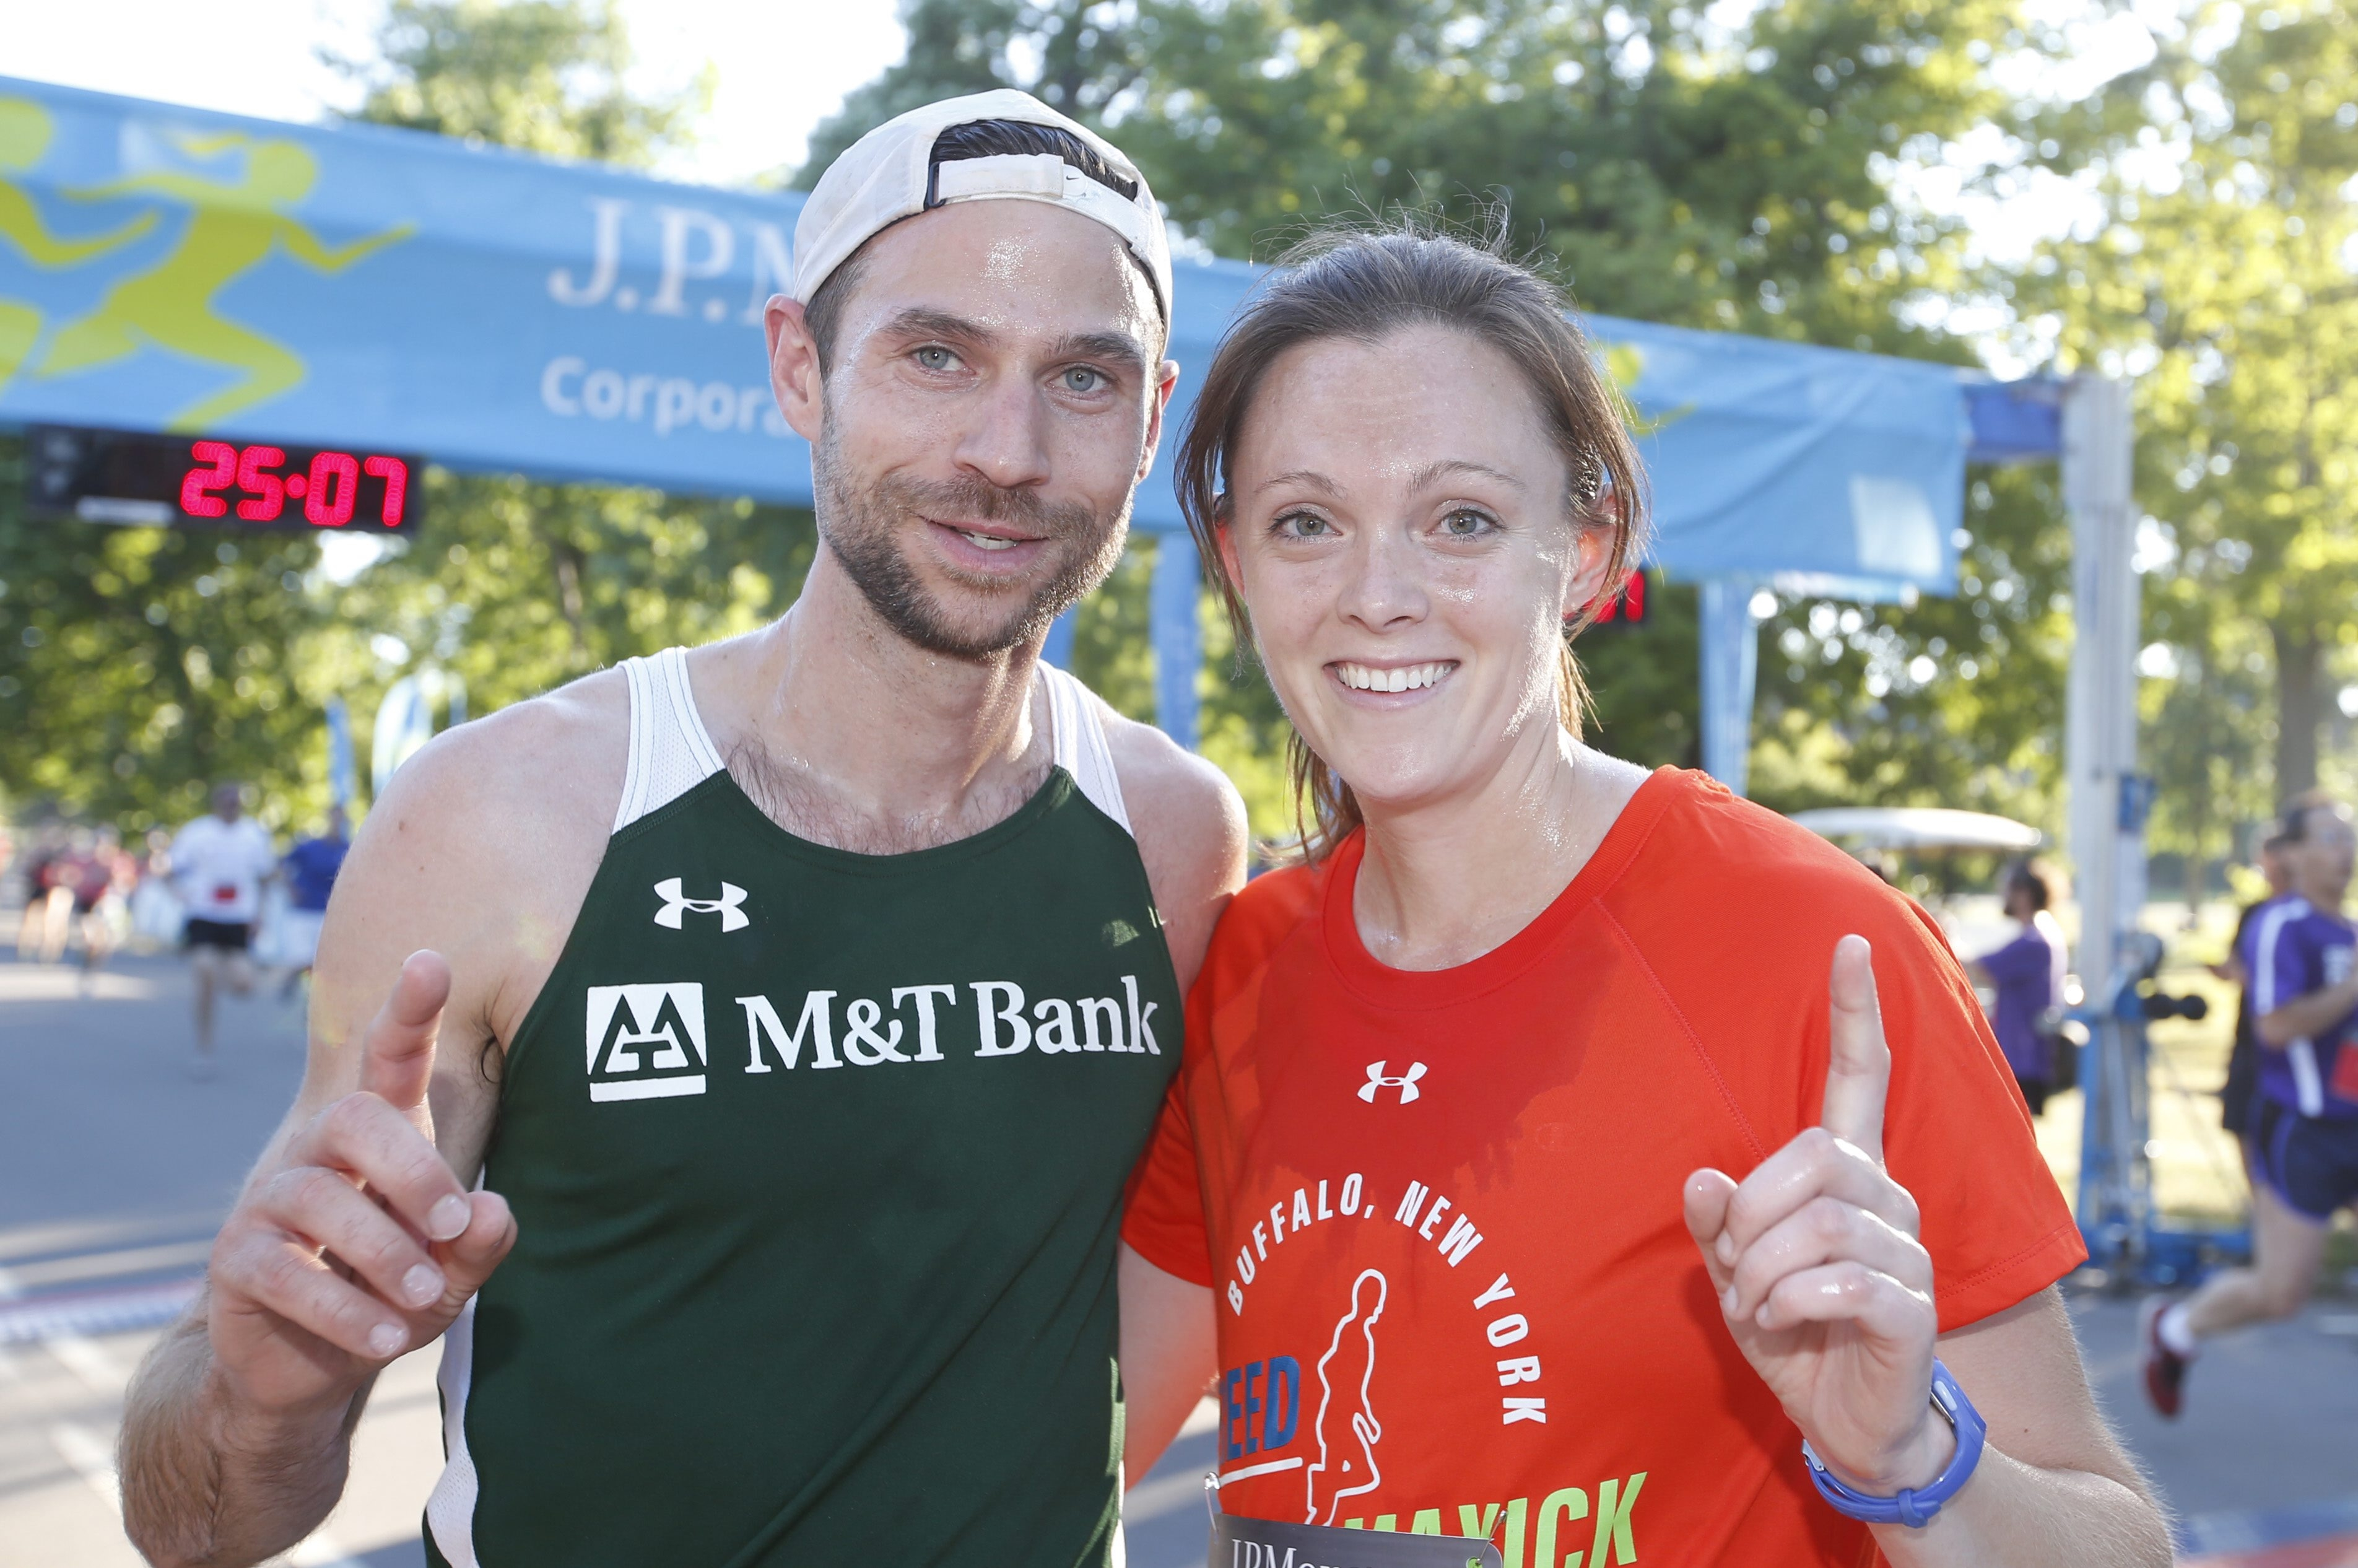 David Keenan and Kimberly Mills were the first male and female finishers in the J.P.Morgan Corporate Challenge Thursday.